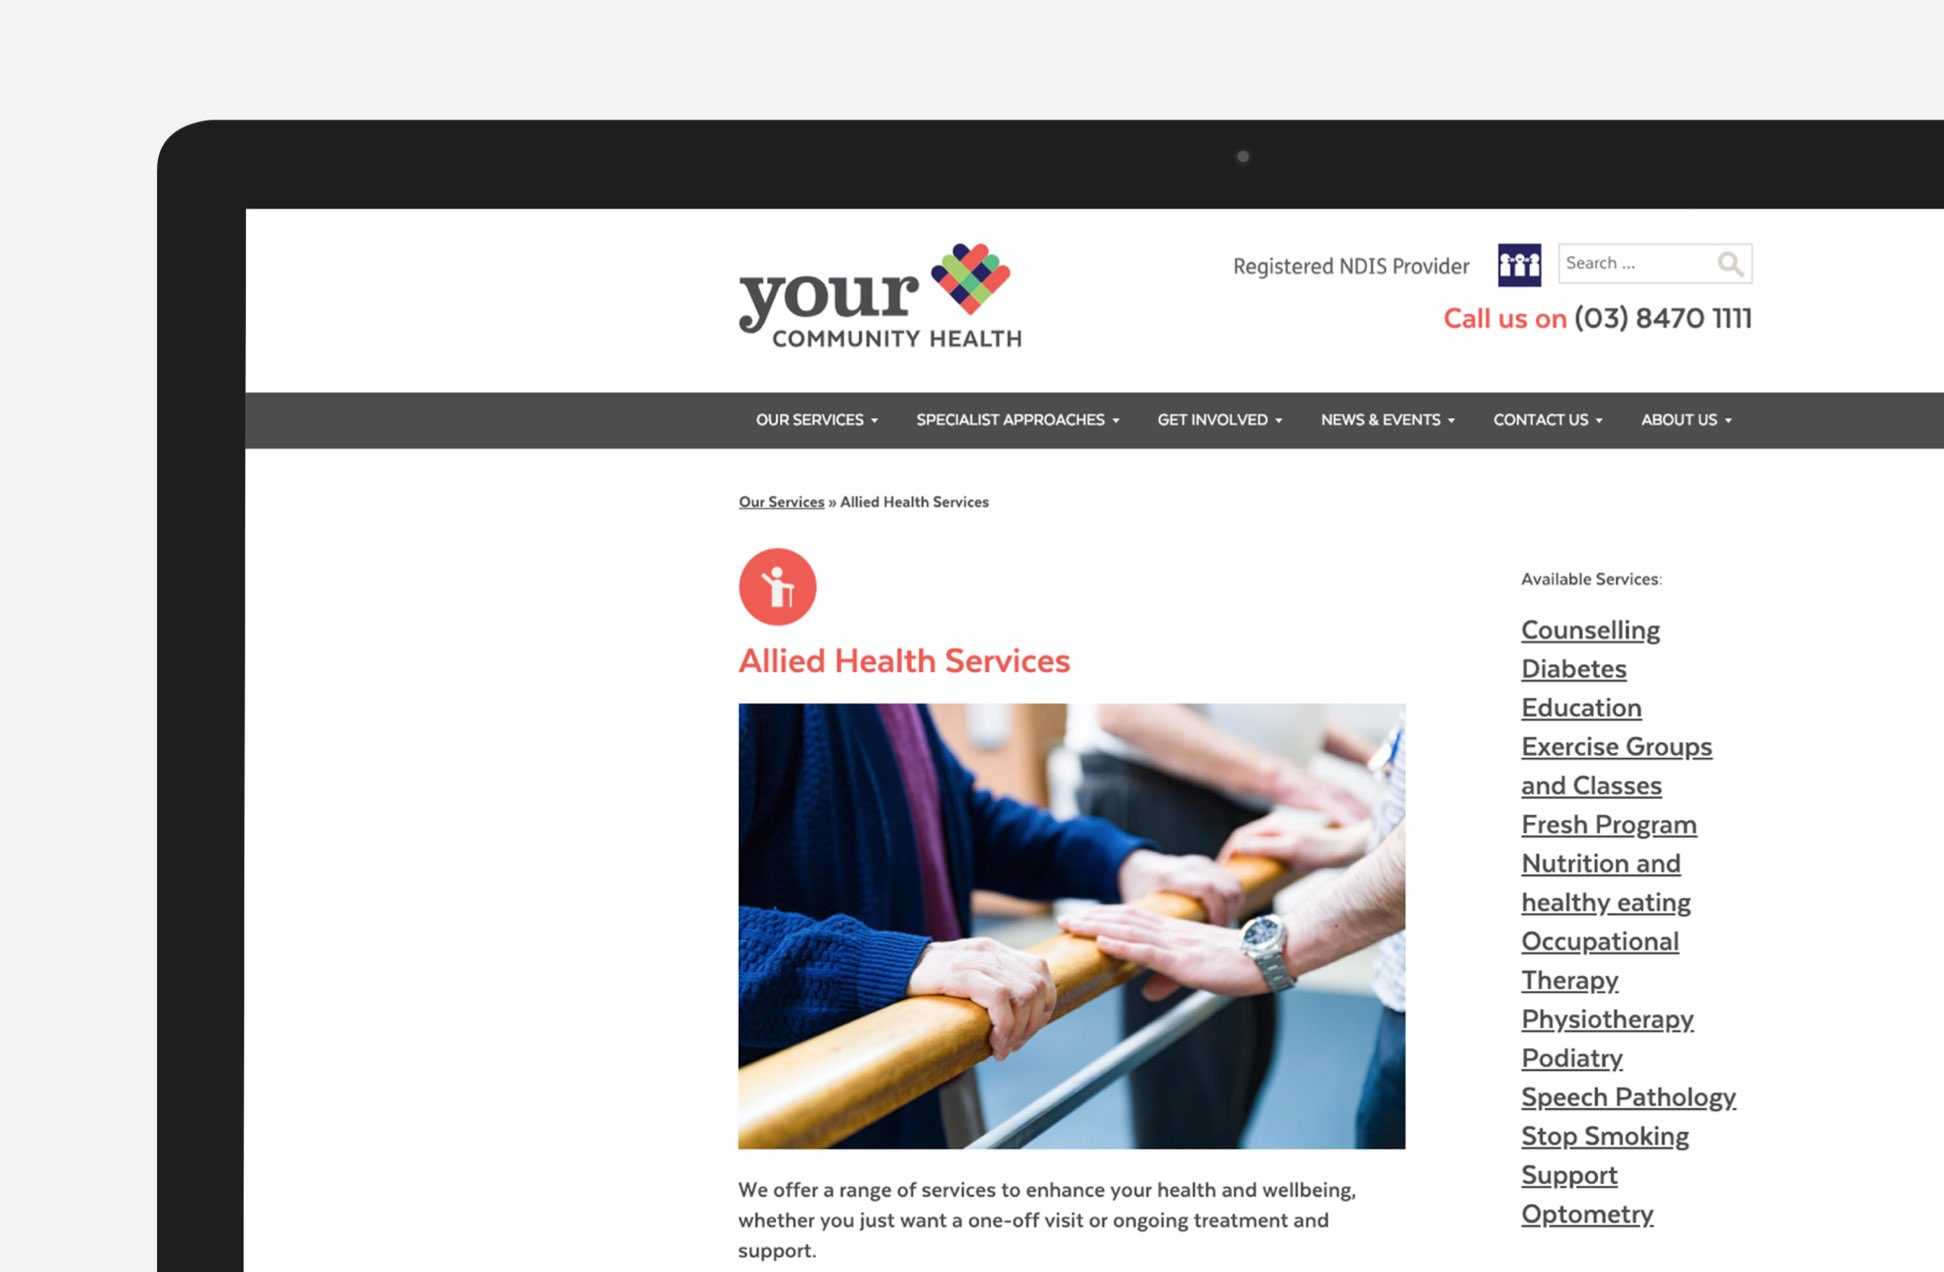 Your Community Health - service sector